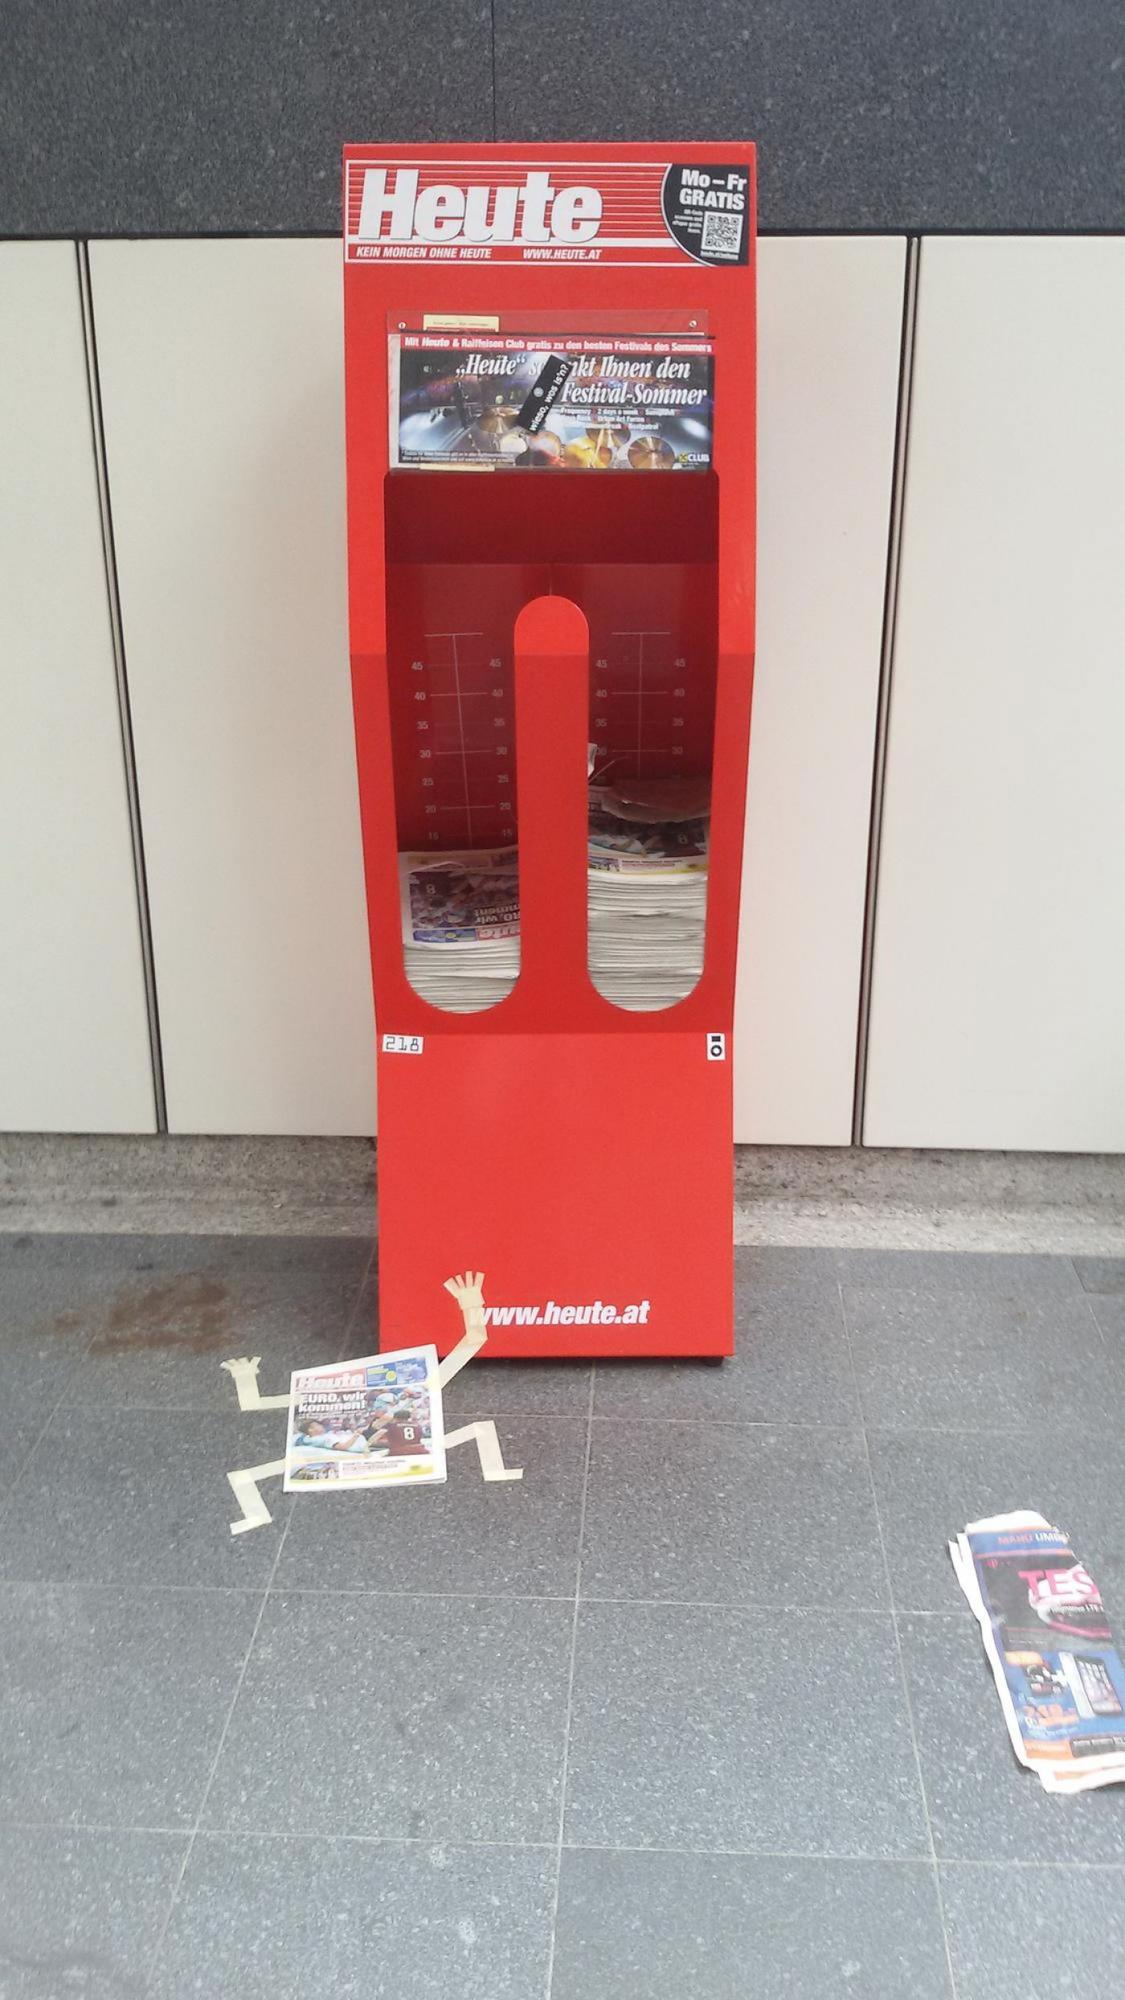 Newspaper stand in metro station